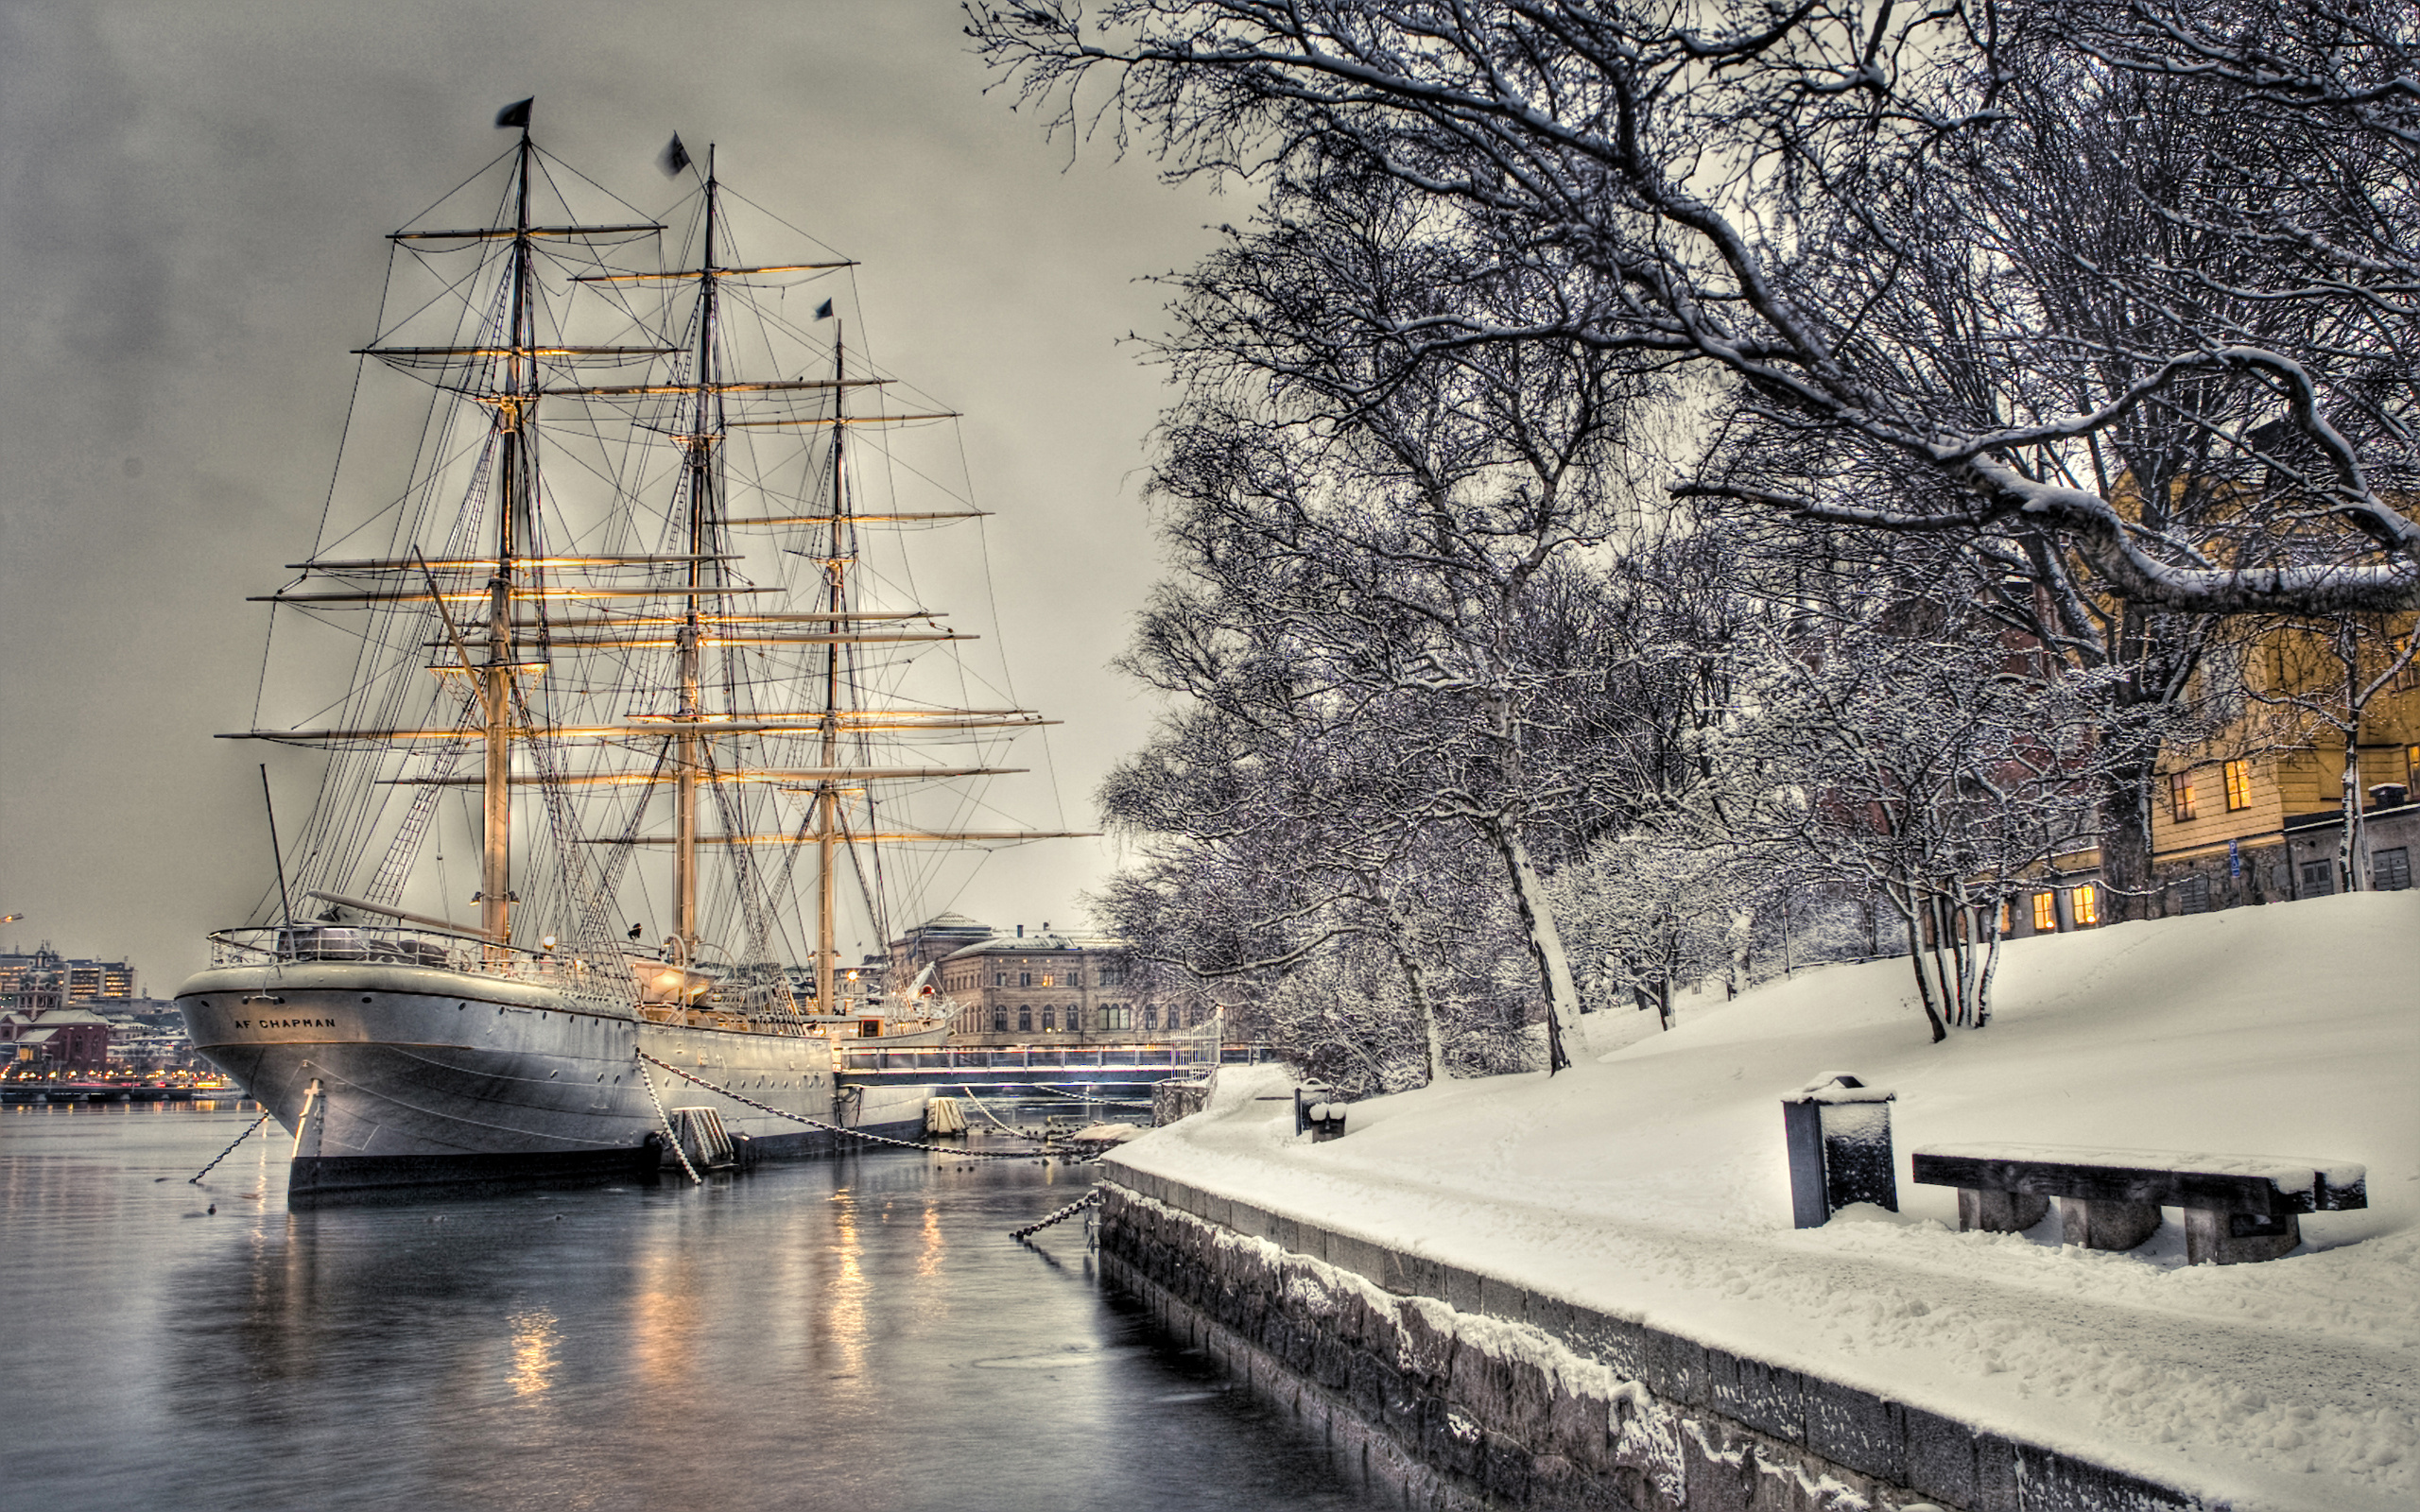 sailing ship background